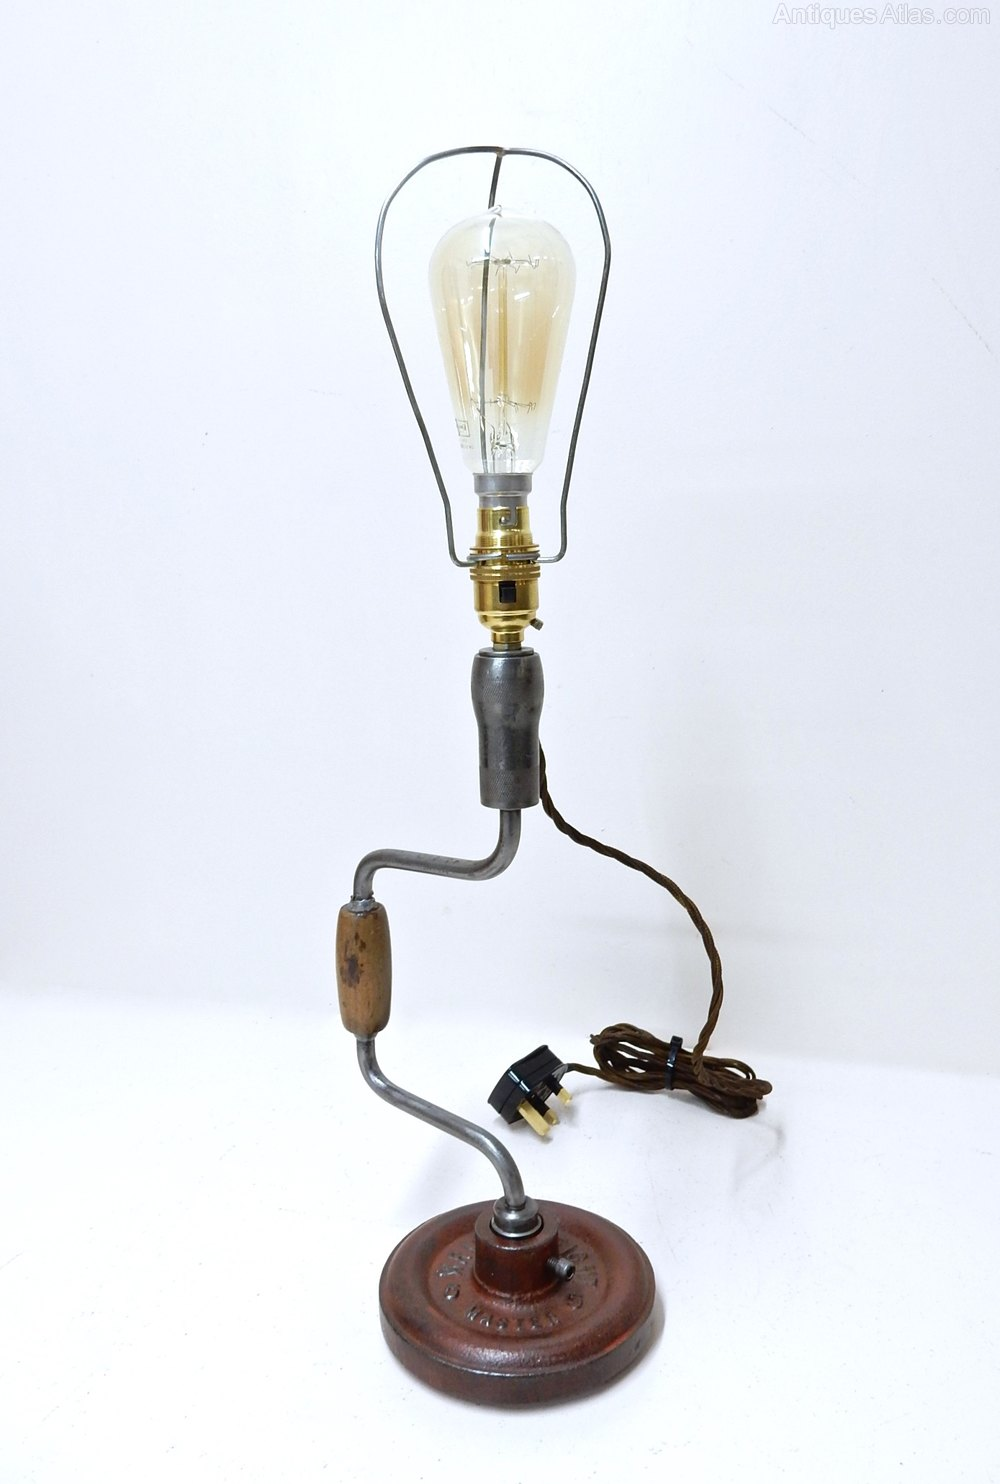 Novelty Lamp Base : Antiques Atlas - Vintage Novelty Table Lamp